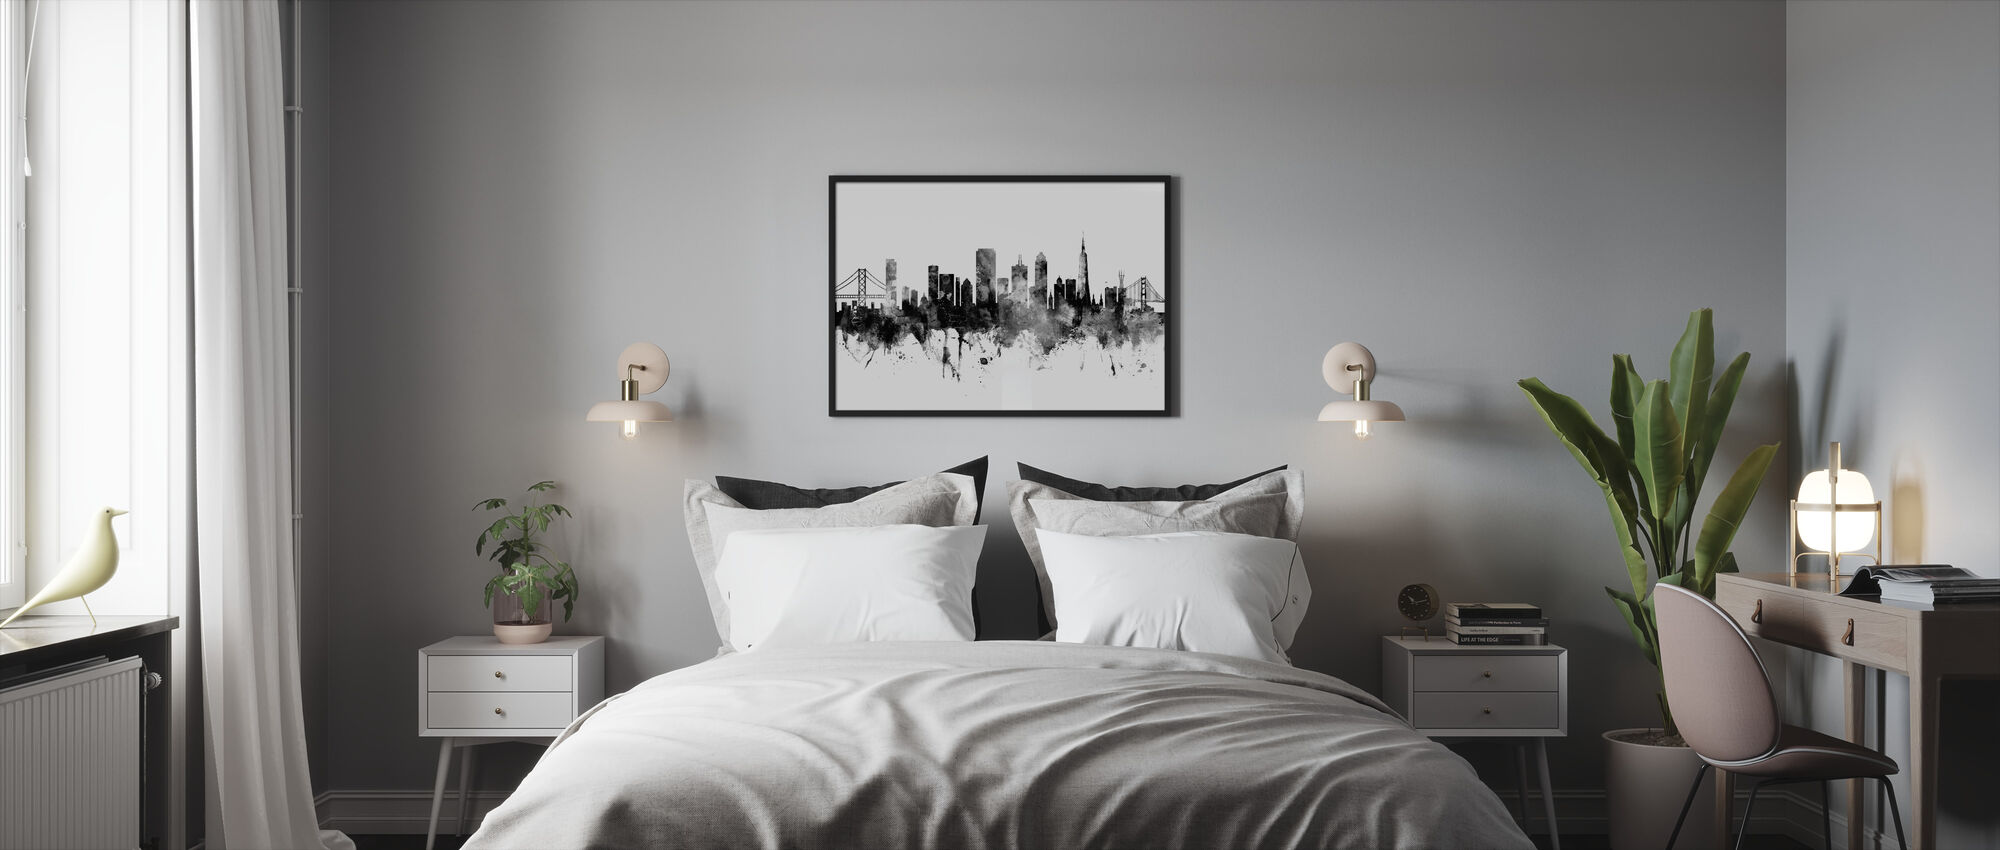 San Francisco City Skyline, black and white - Framed print - Bedroom